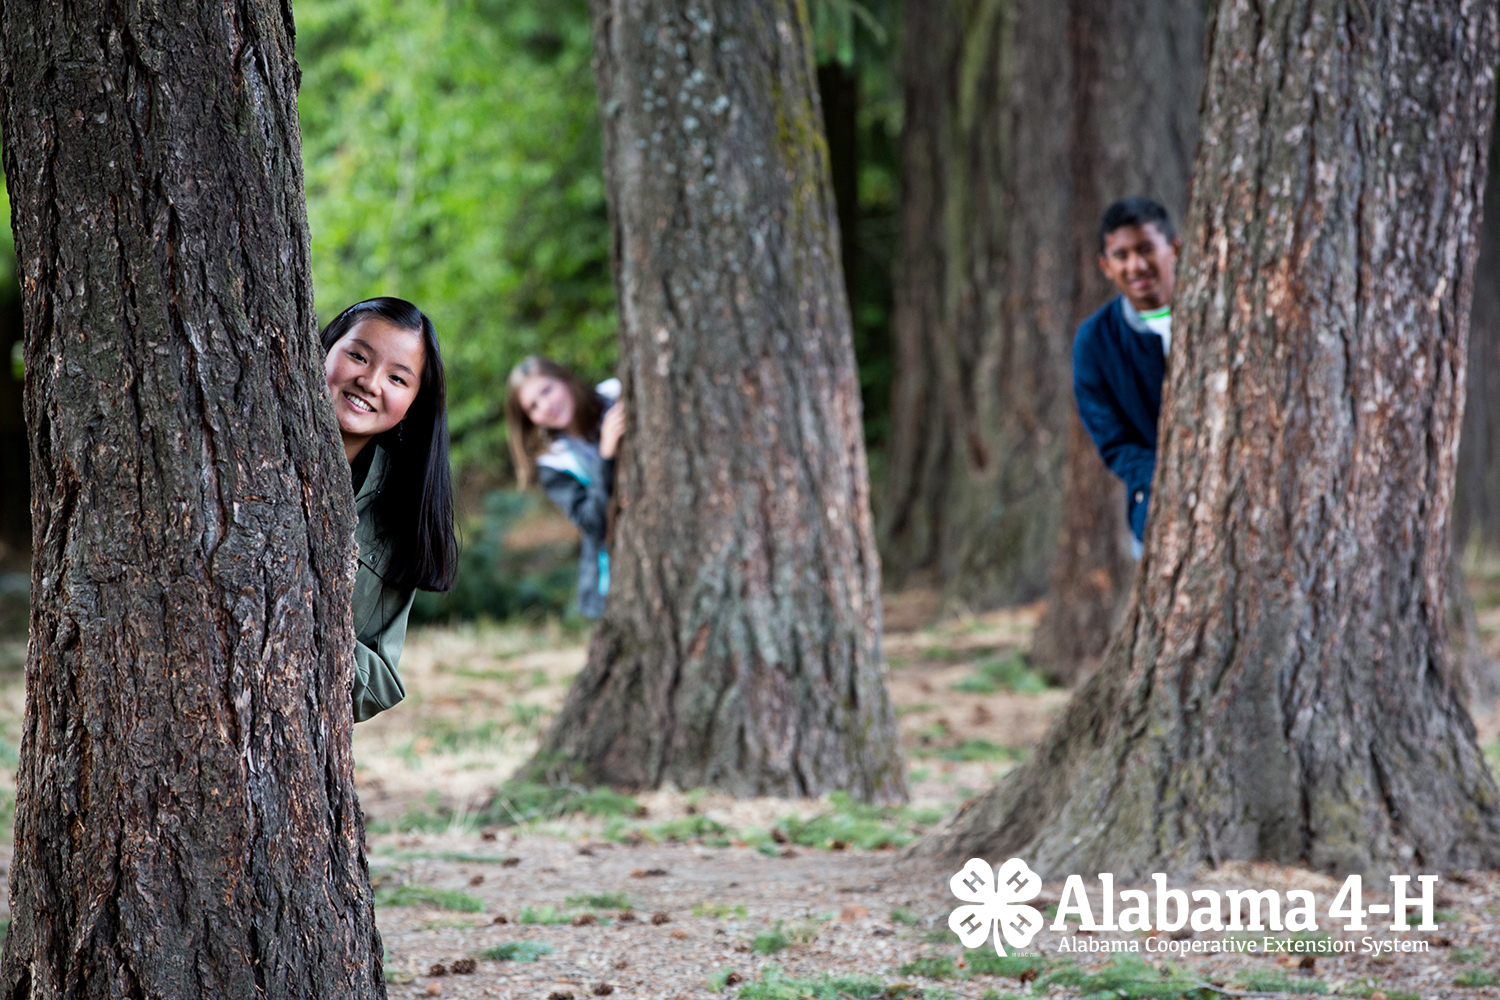 Alabama 4-H kids peaking from behind trees in a forest